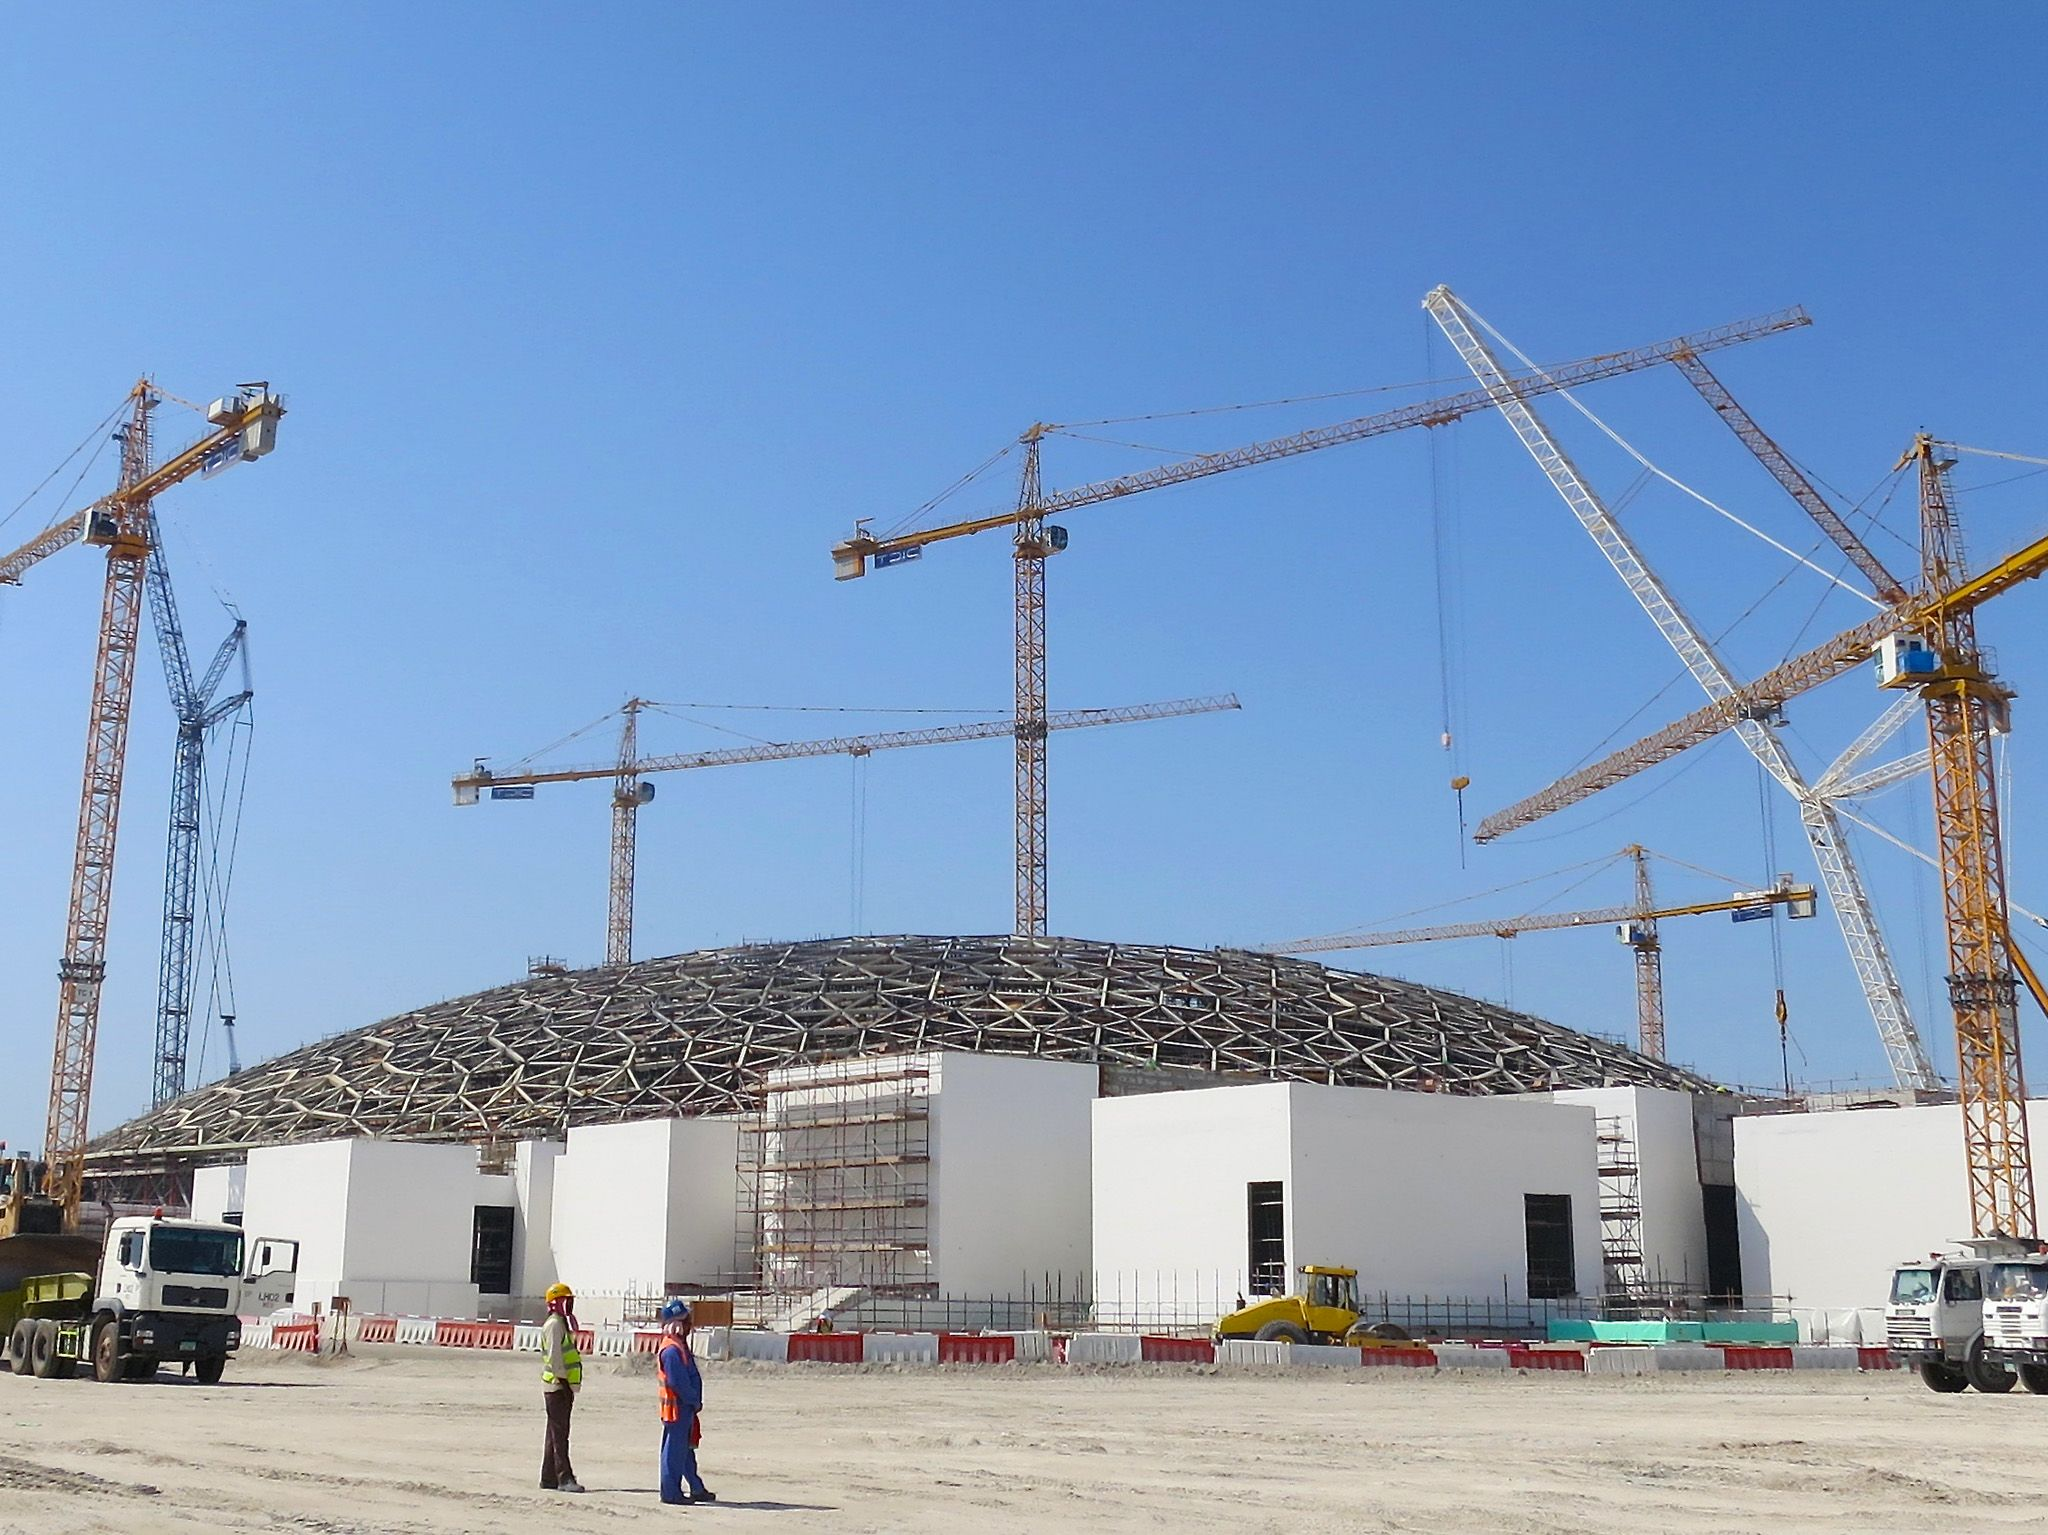 Abu Dhabi: The exterior of the Louvre Ahu Dhabi. This image is from Megastructures: Louvre Abu... [Photo of the day - June 2018]